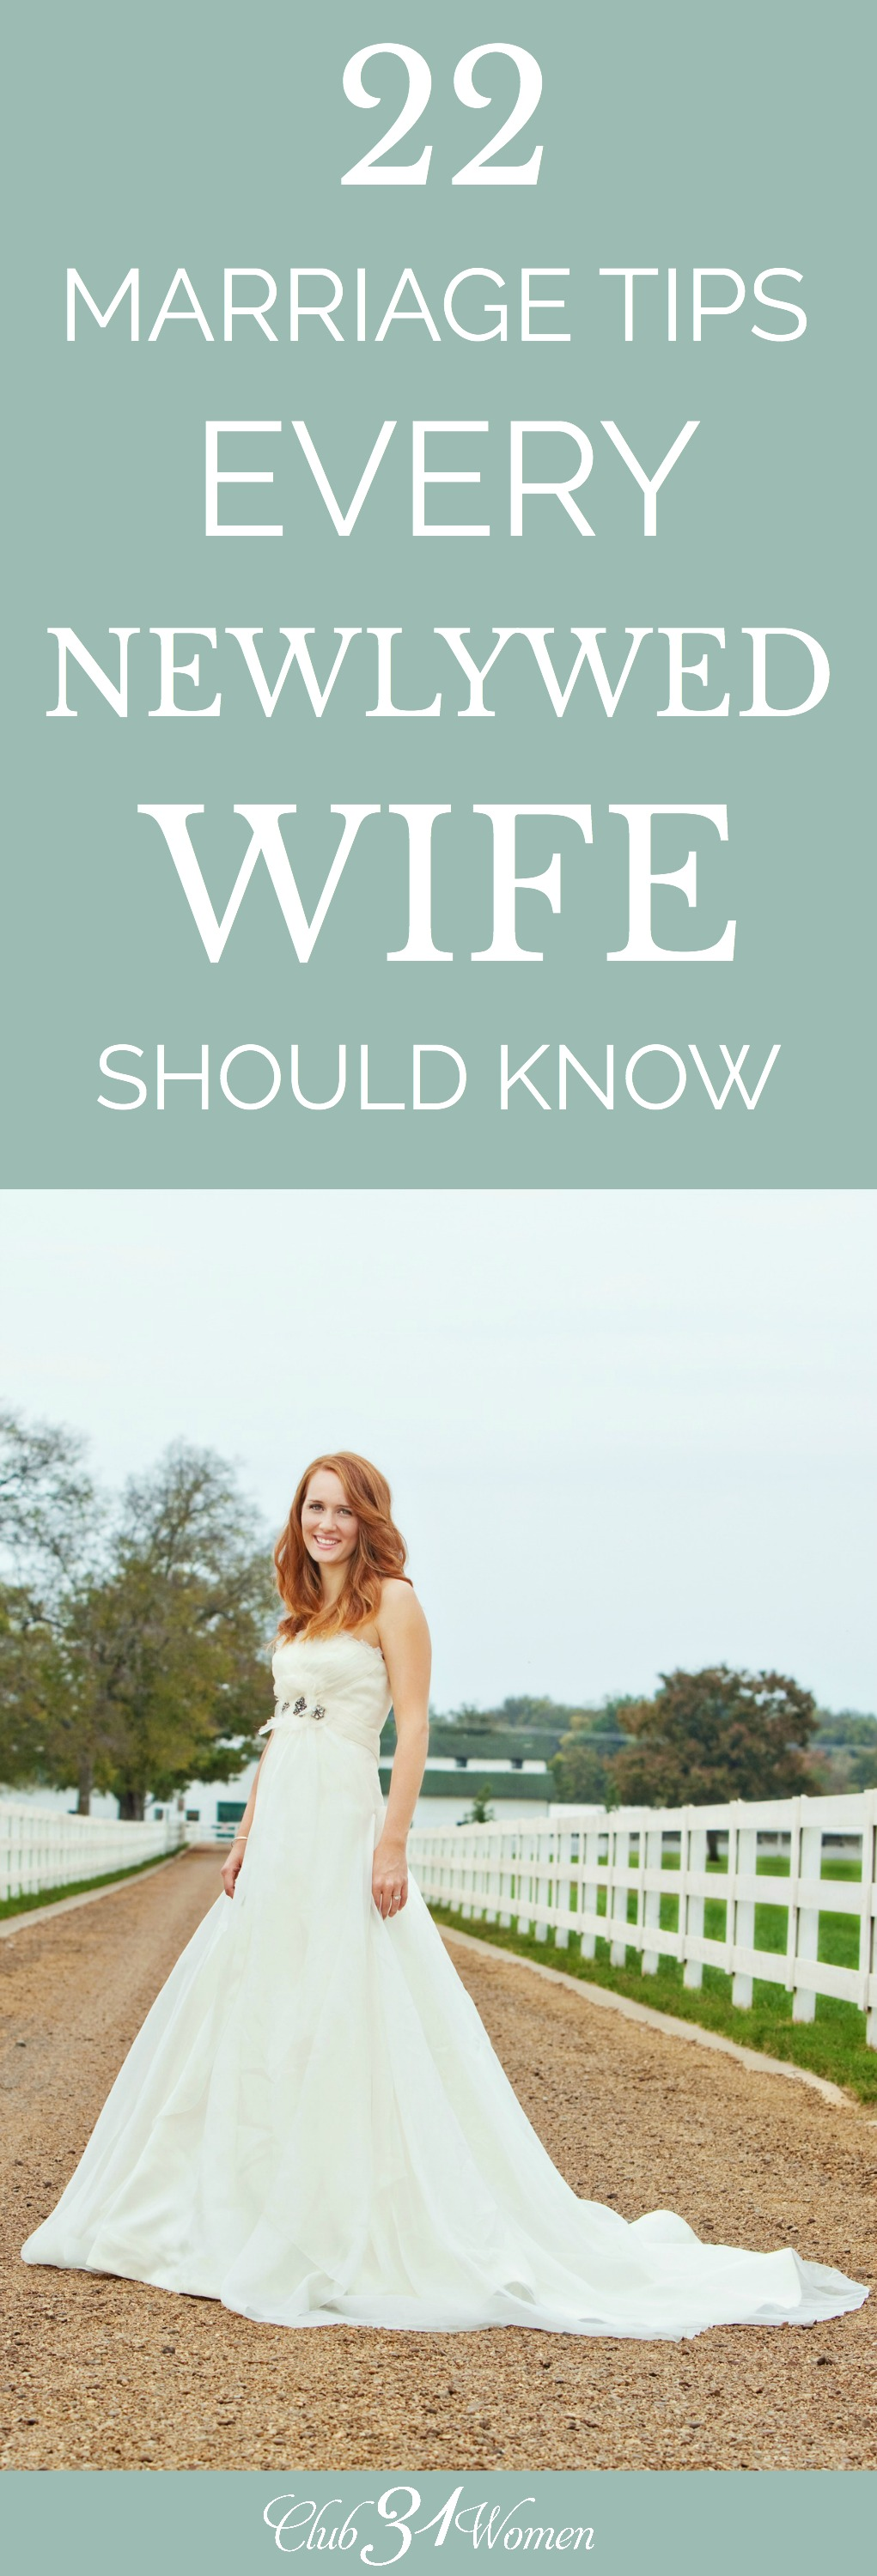 When entering marriage, it's important to recognize being intentional matters to keep a marriage strong. A few marriage tips can be very helpful! via @Club31Women